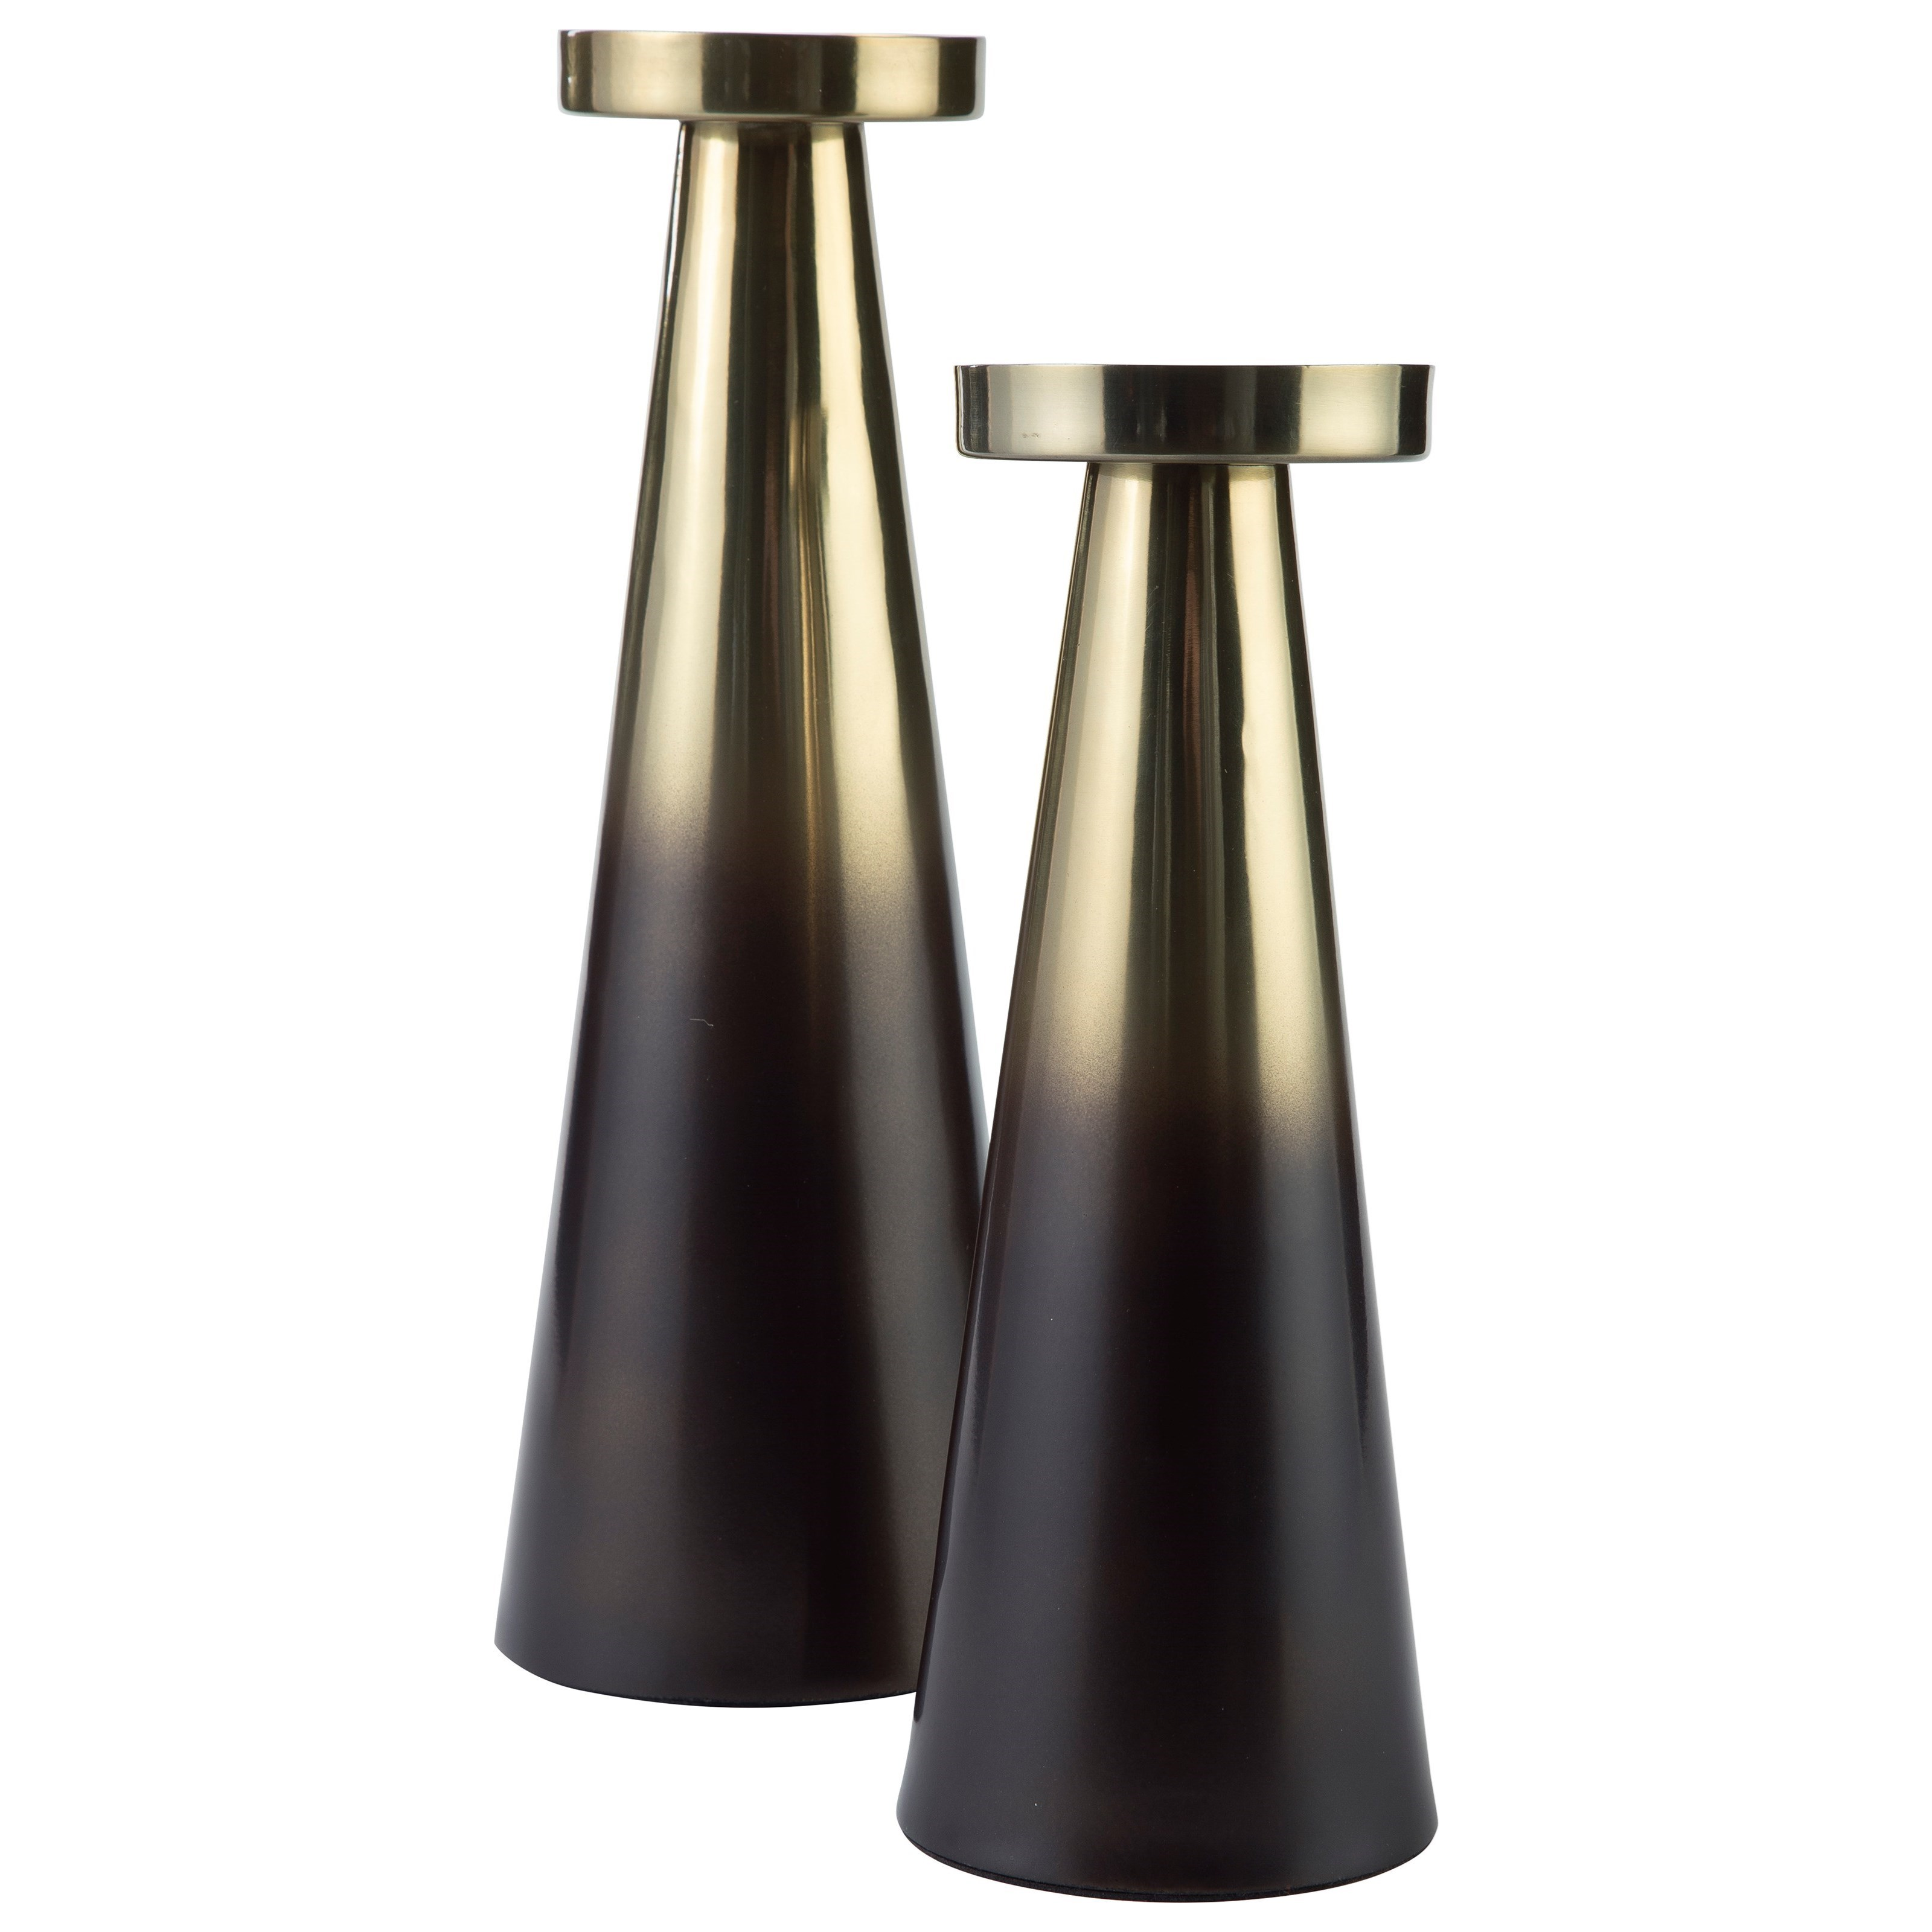 Theseus Brown/Golden Candle Holder Set